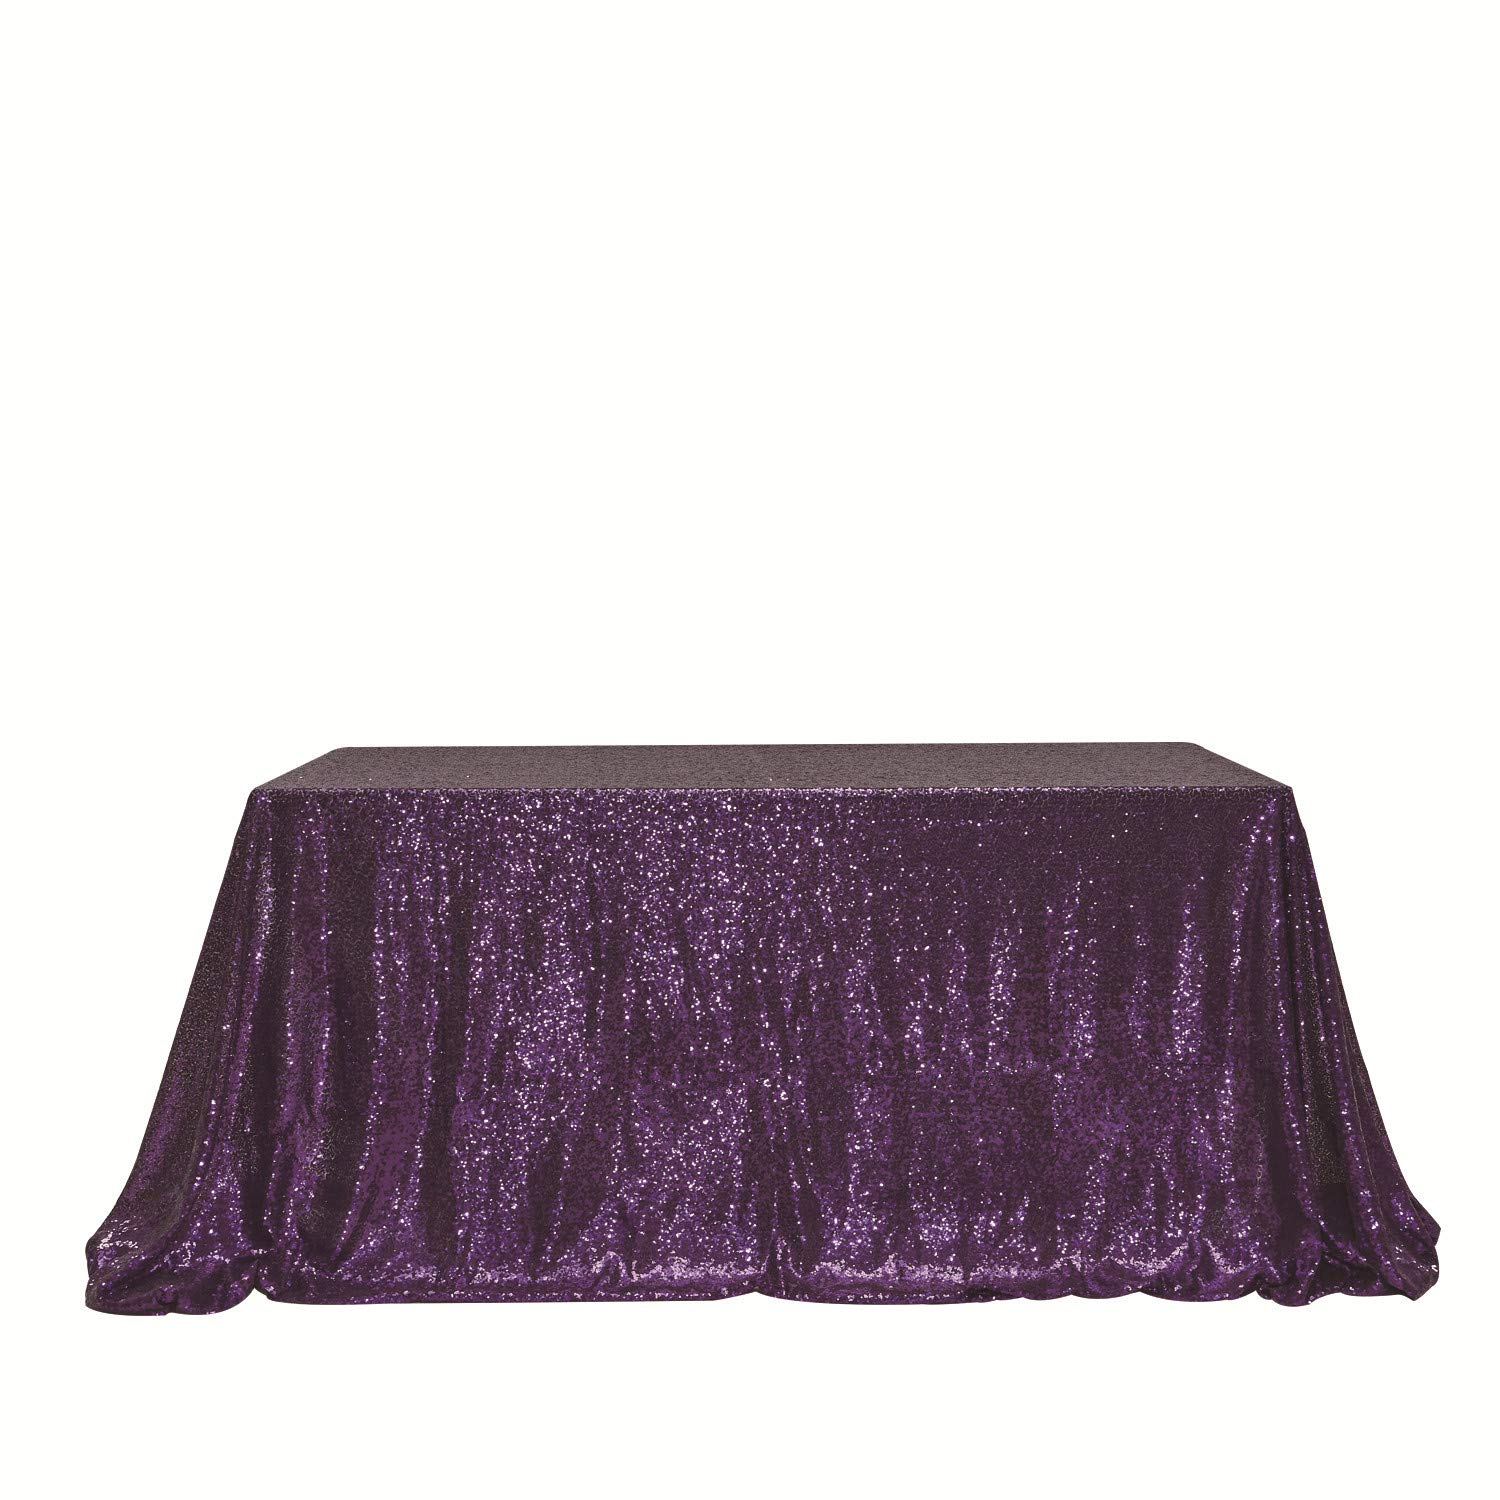 PartyDelight 90'' x 156'' Purple Sequin Tablecloth for Wedding, Baby Shower, Birthday, Banquet, Christmas, and Banquet.